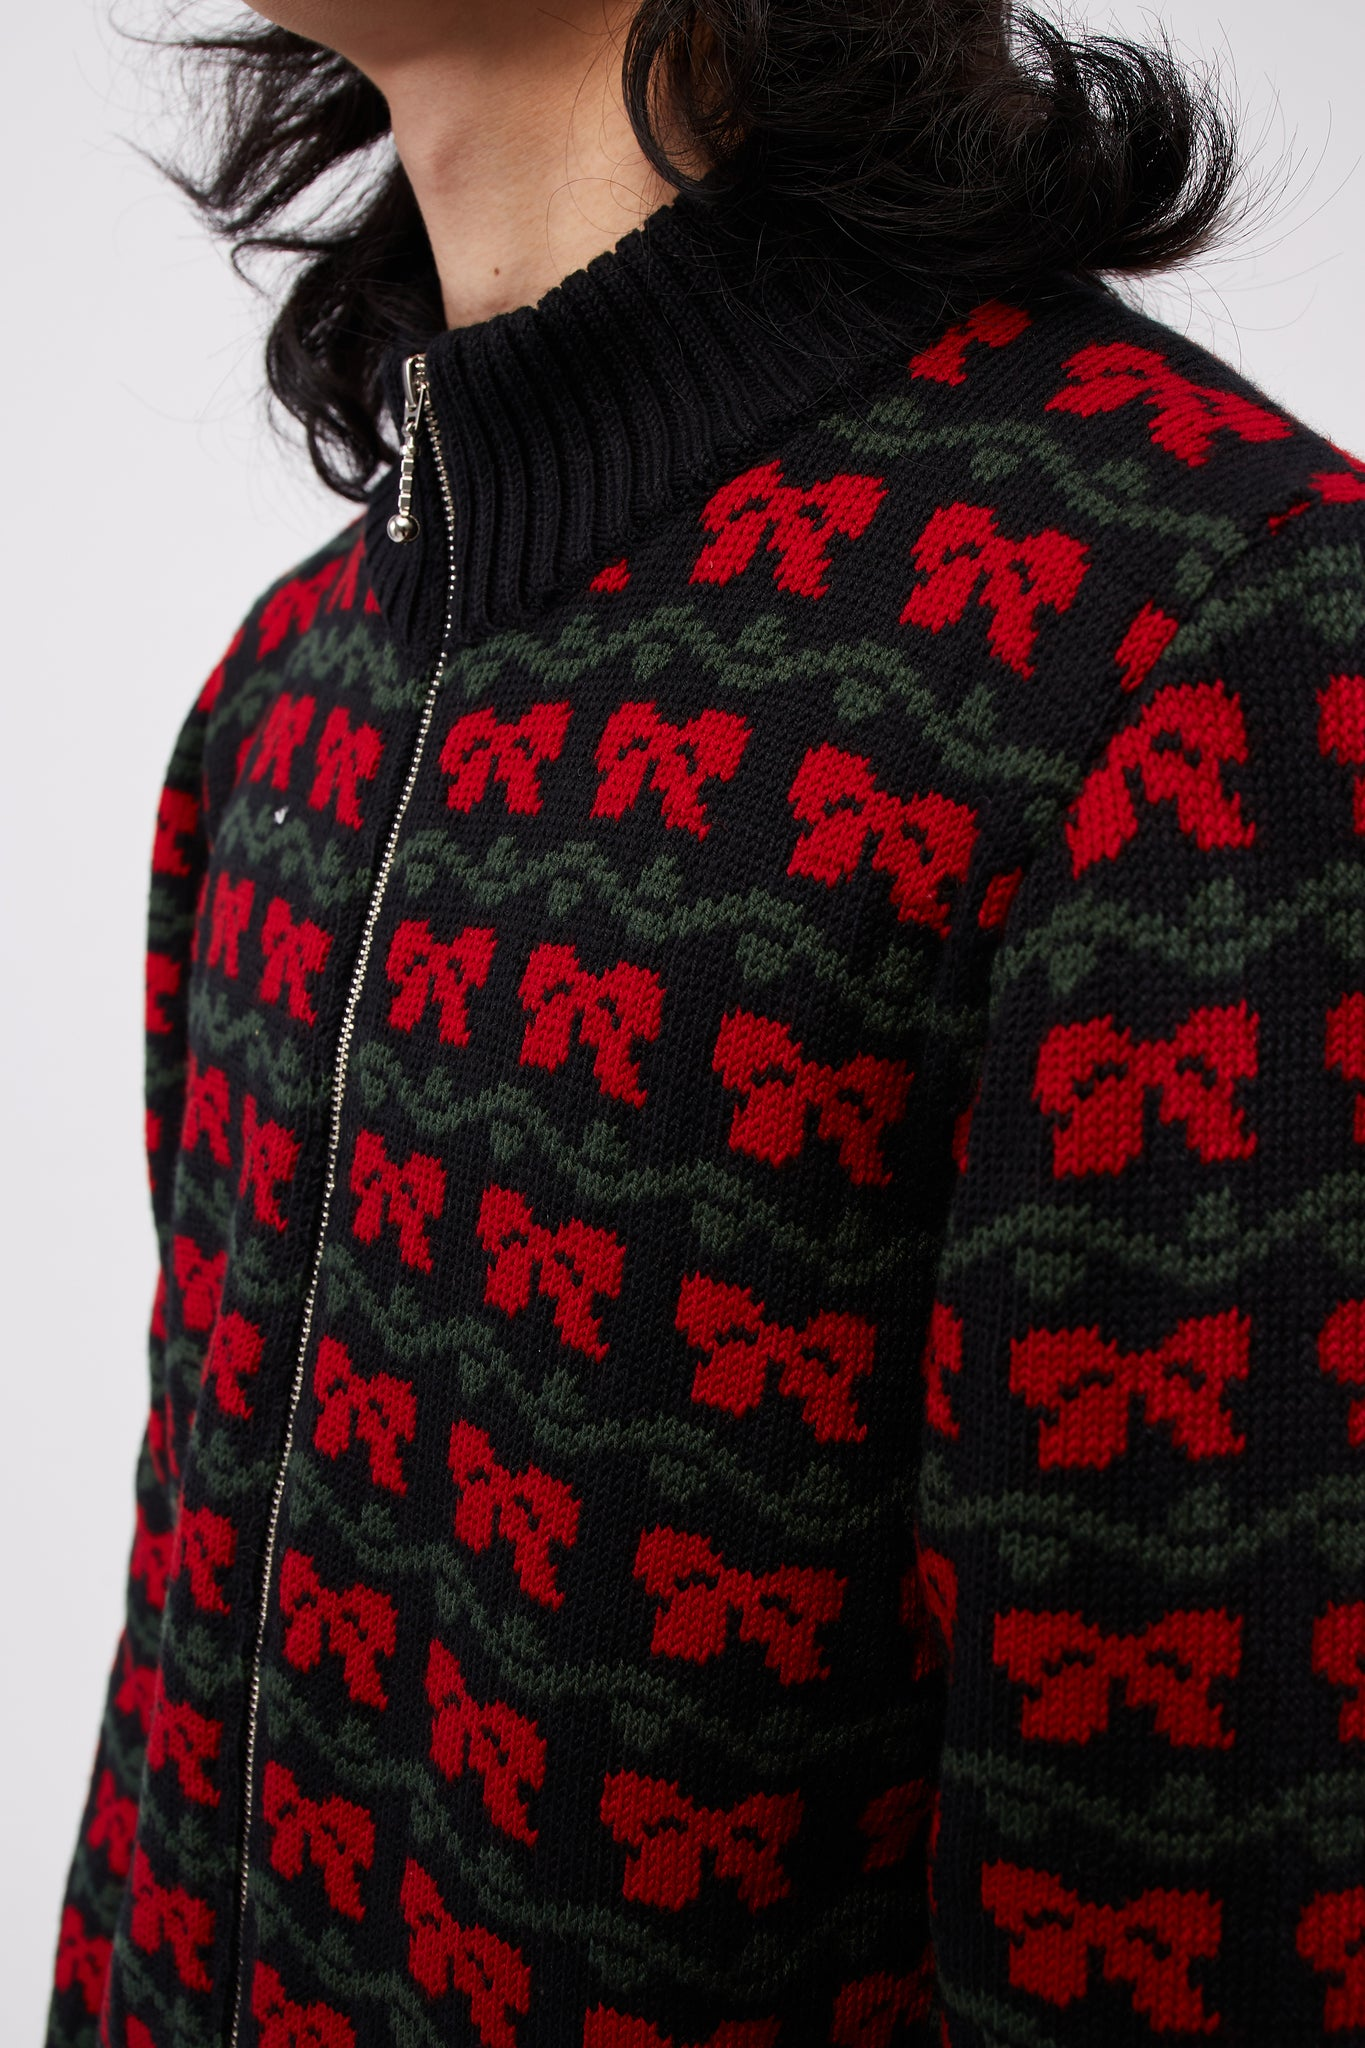 Knit Track Top Bow Ties Jacquard